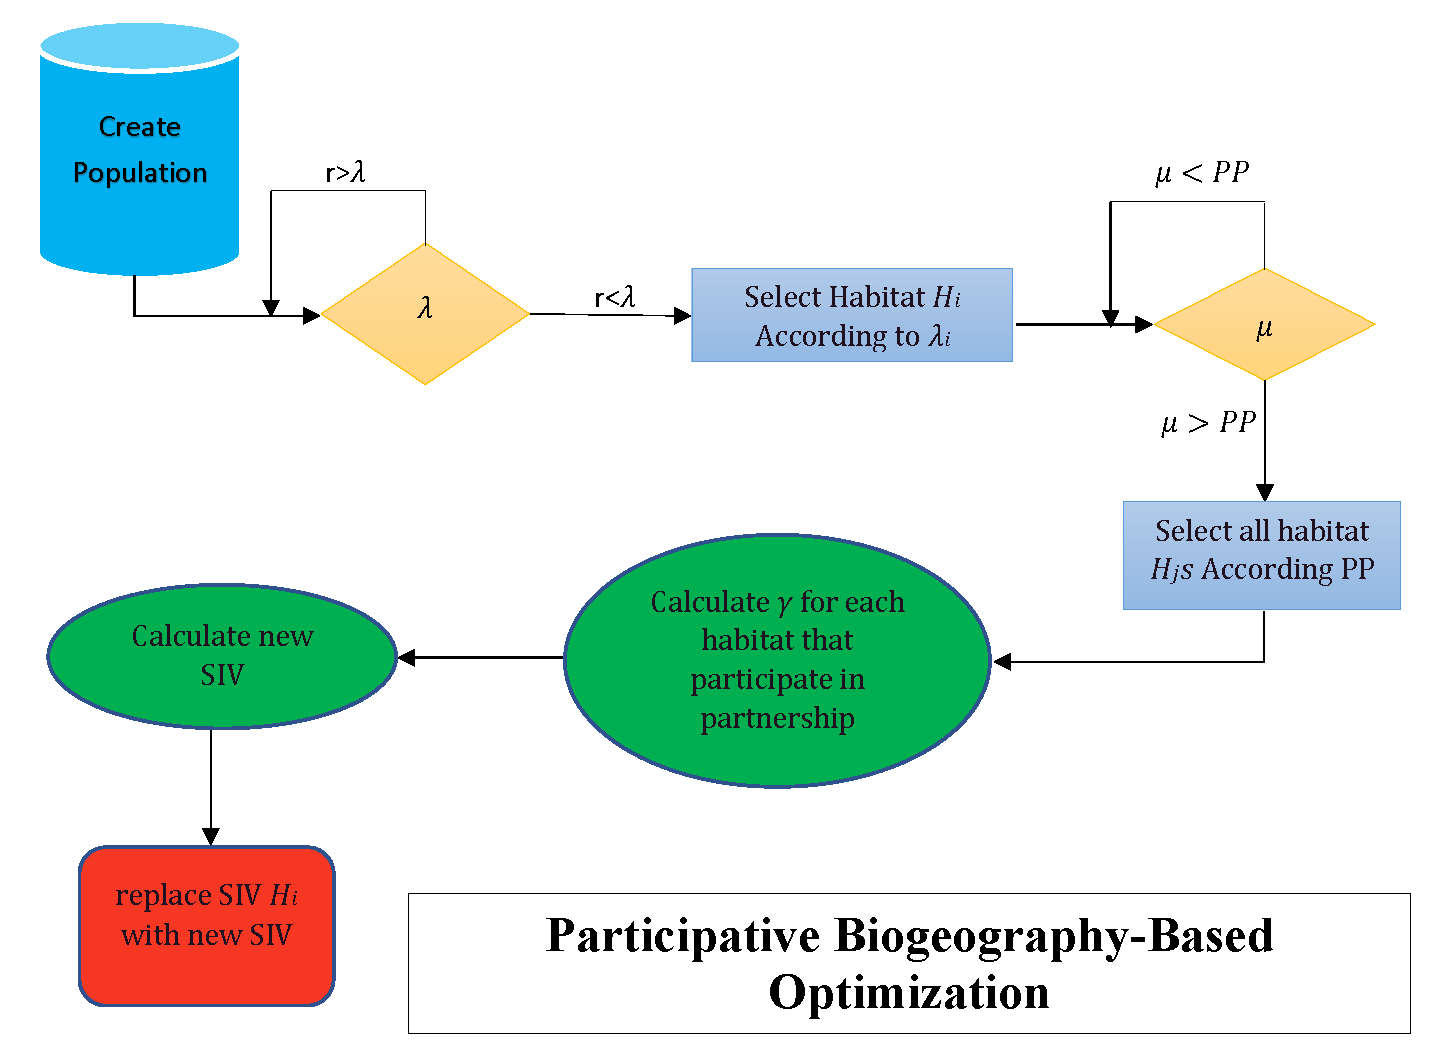 Participative Biogeography-Based Optimization